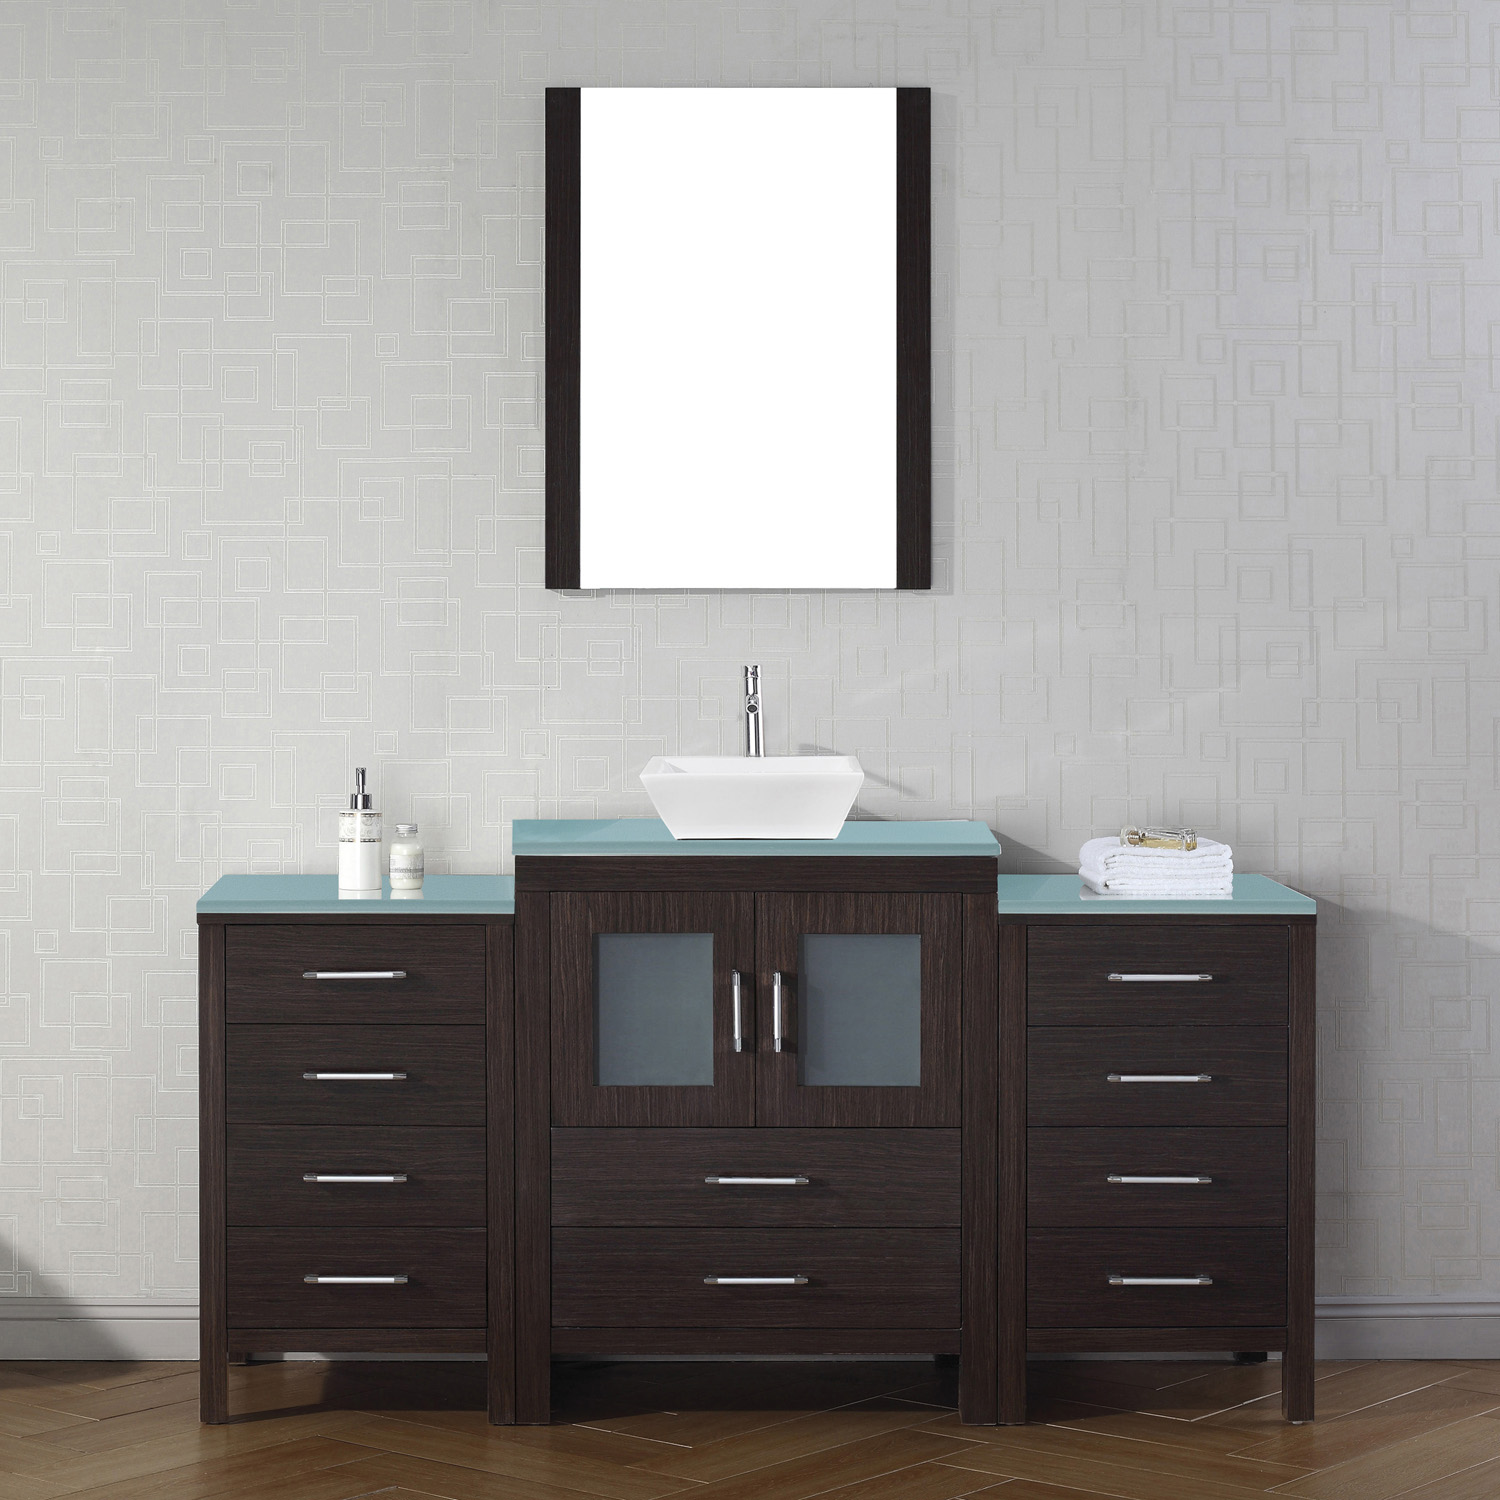 "64"" Single Bath Vanity in Espresso with Aqua Tempered Glass Top and Square Sink with Polished Chrome Faucet and Mirror"